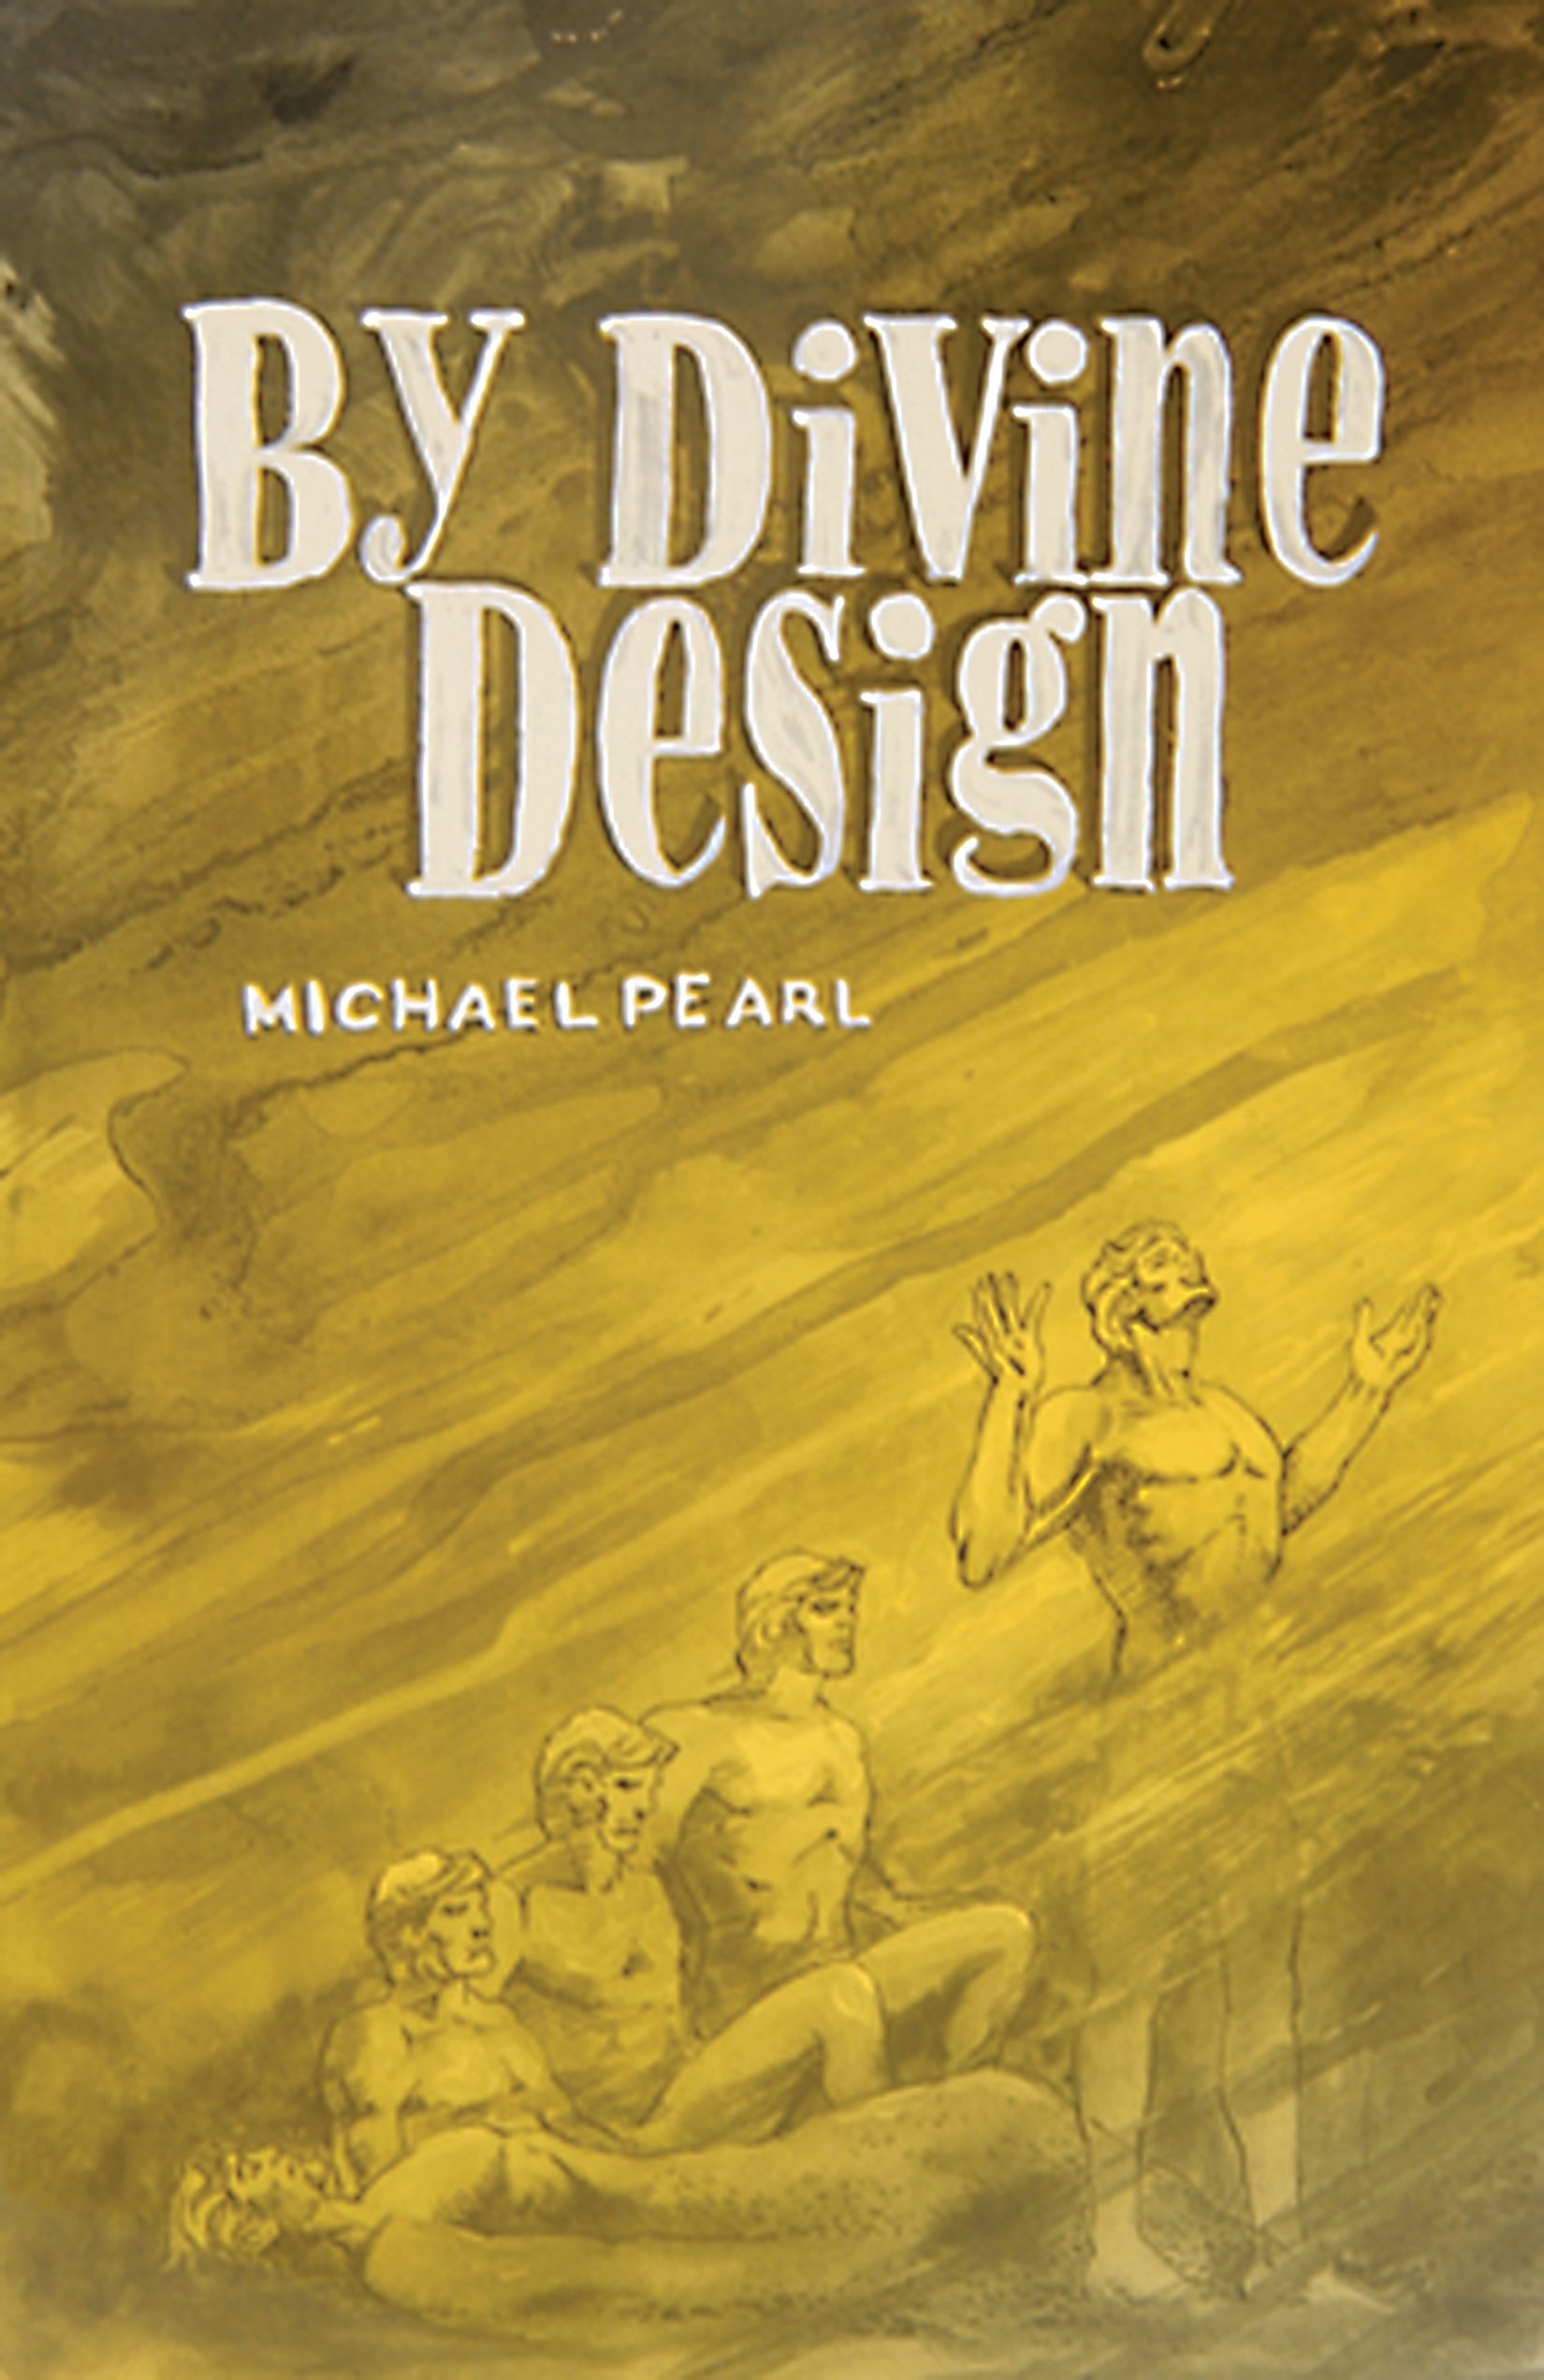 By Divine Design: Questions that trouble many but few dare to ask By: Michael Pearl